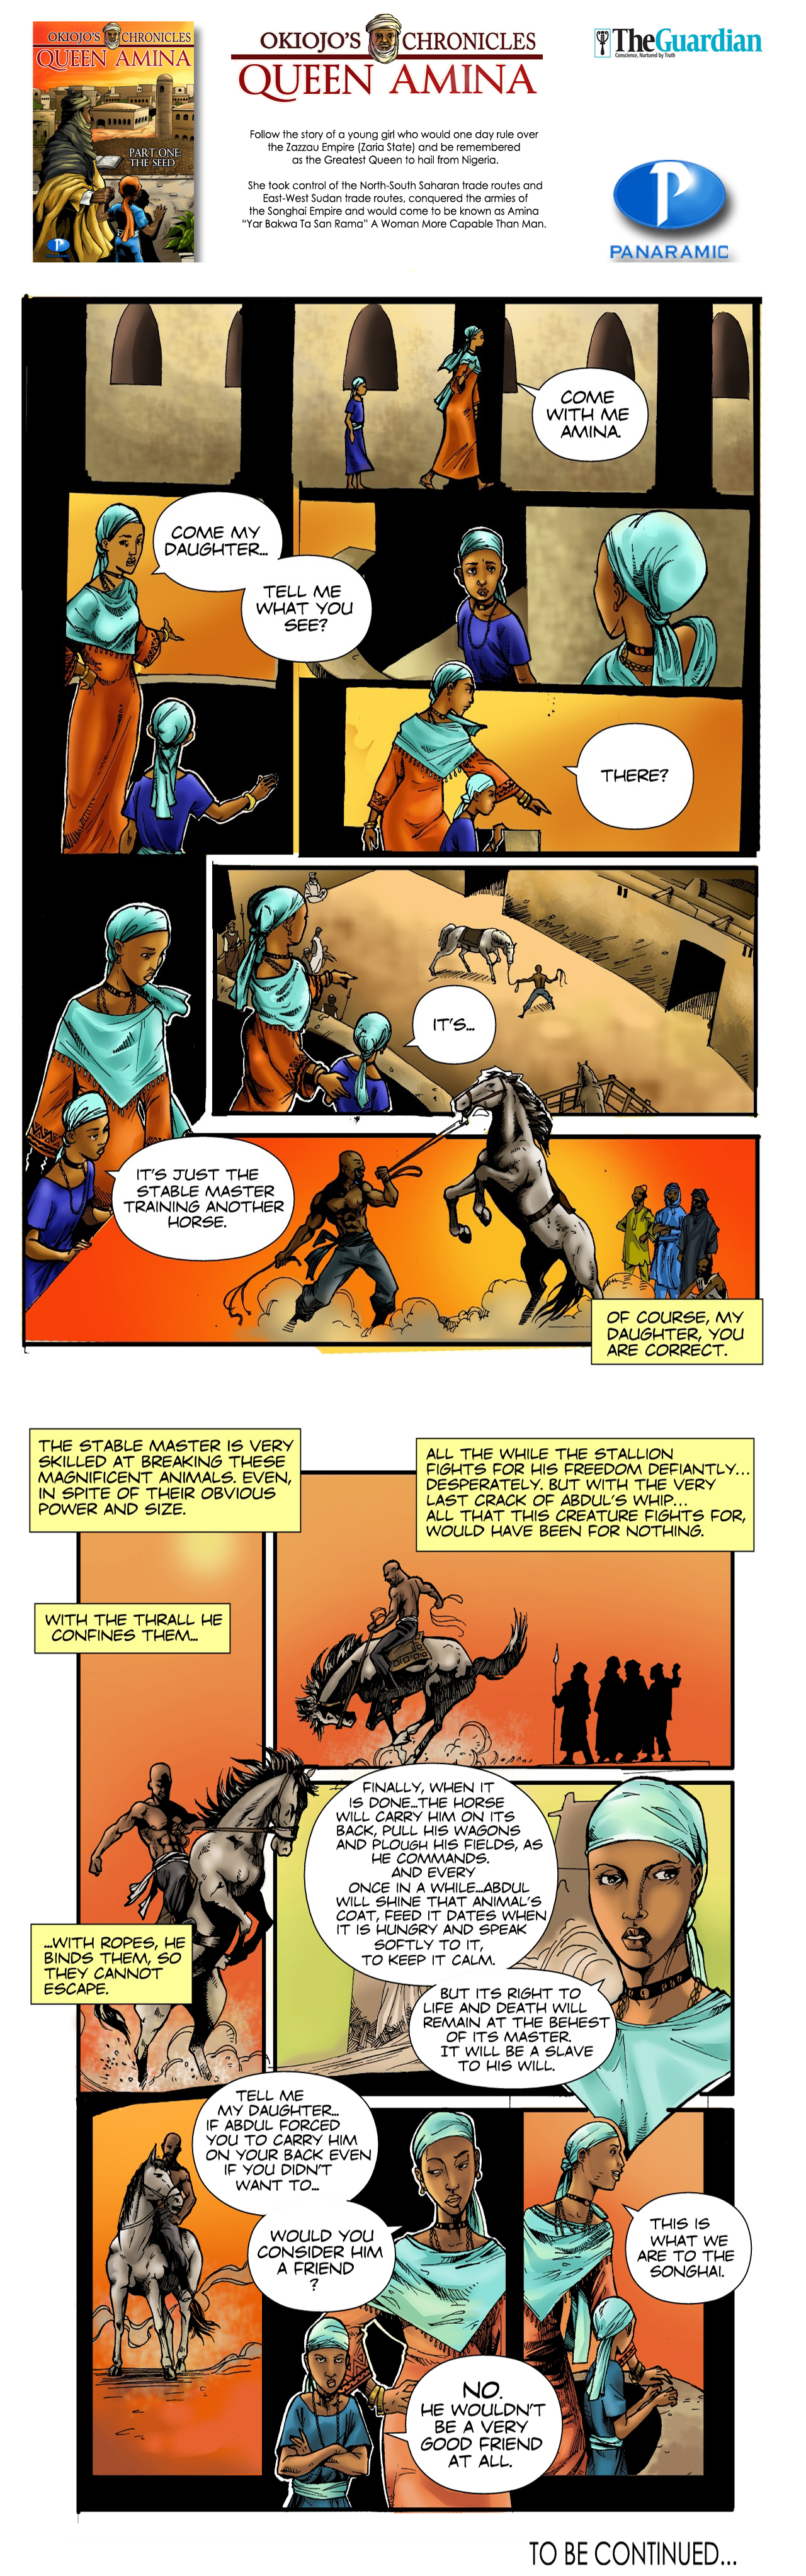 Queen Amina (Part 1) - 5